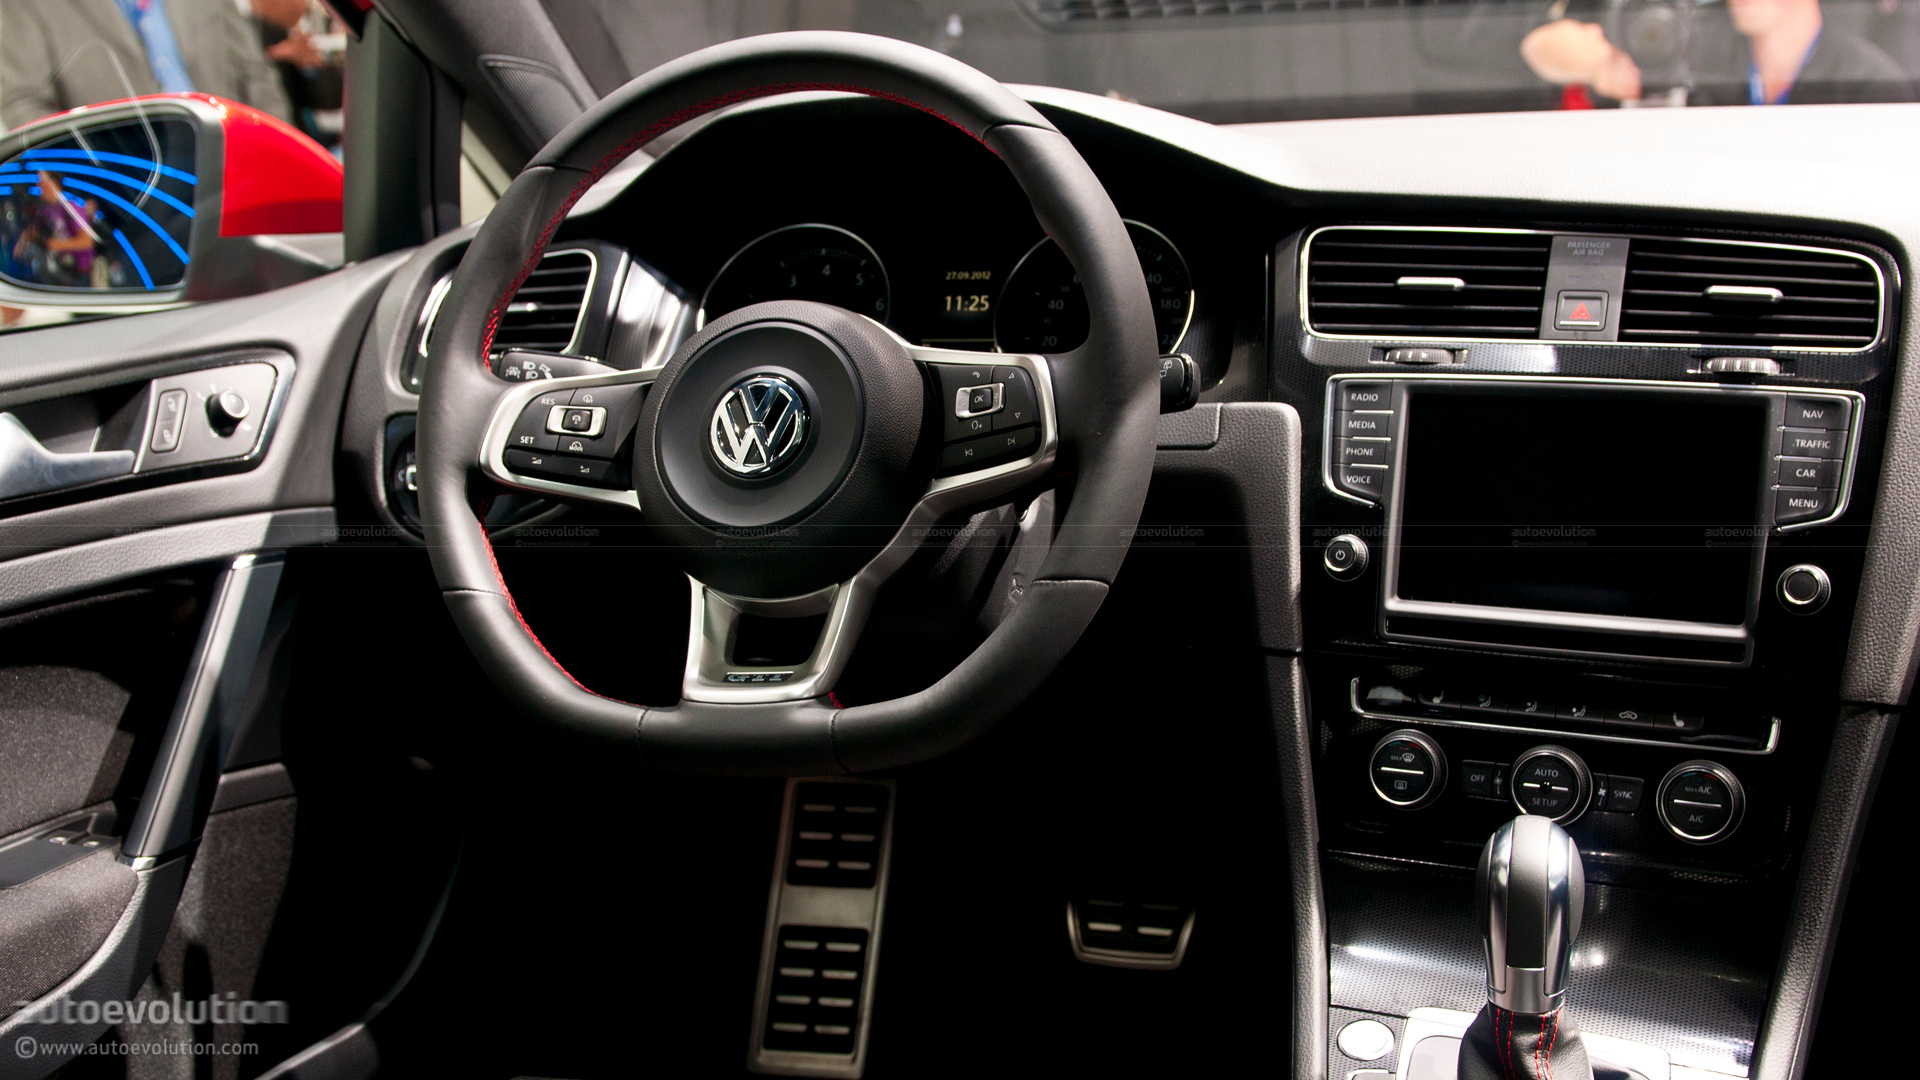 Paris 2012: Volkswagen Golf VII GTI Concept [Live Photos ...